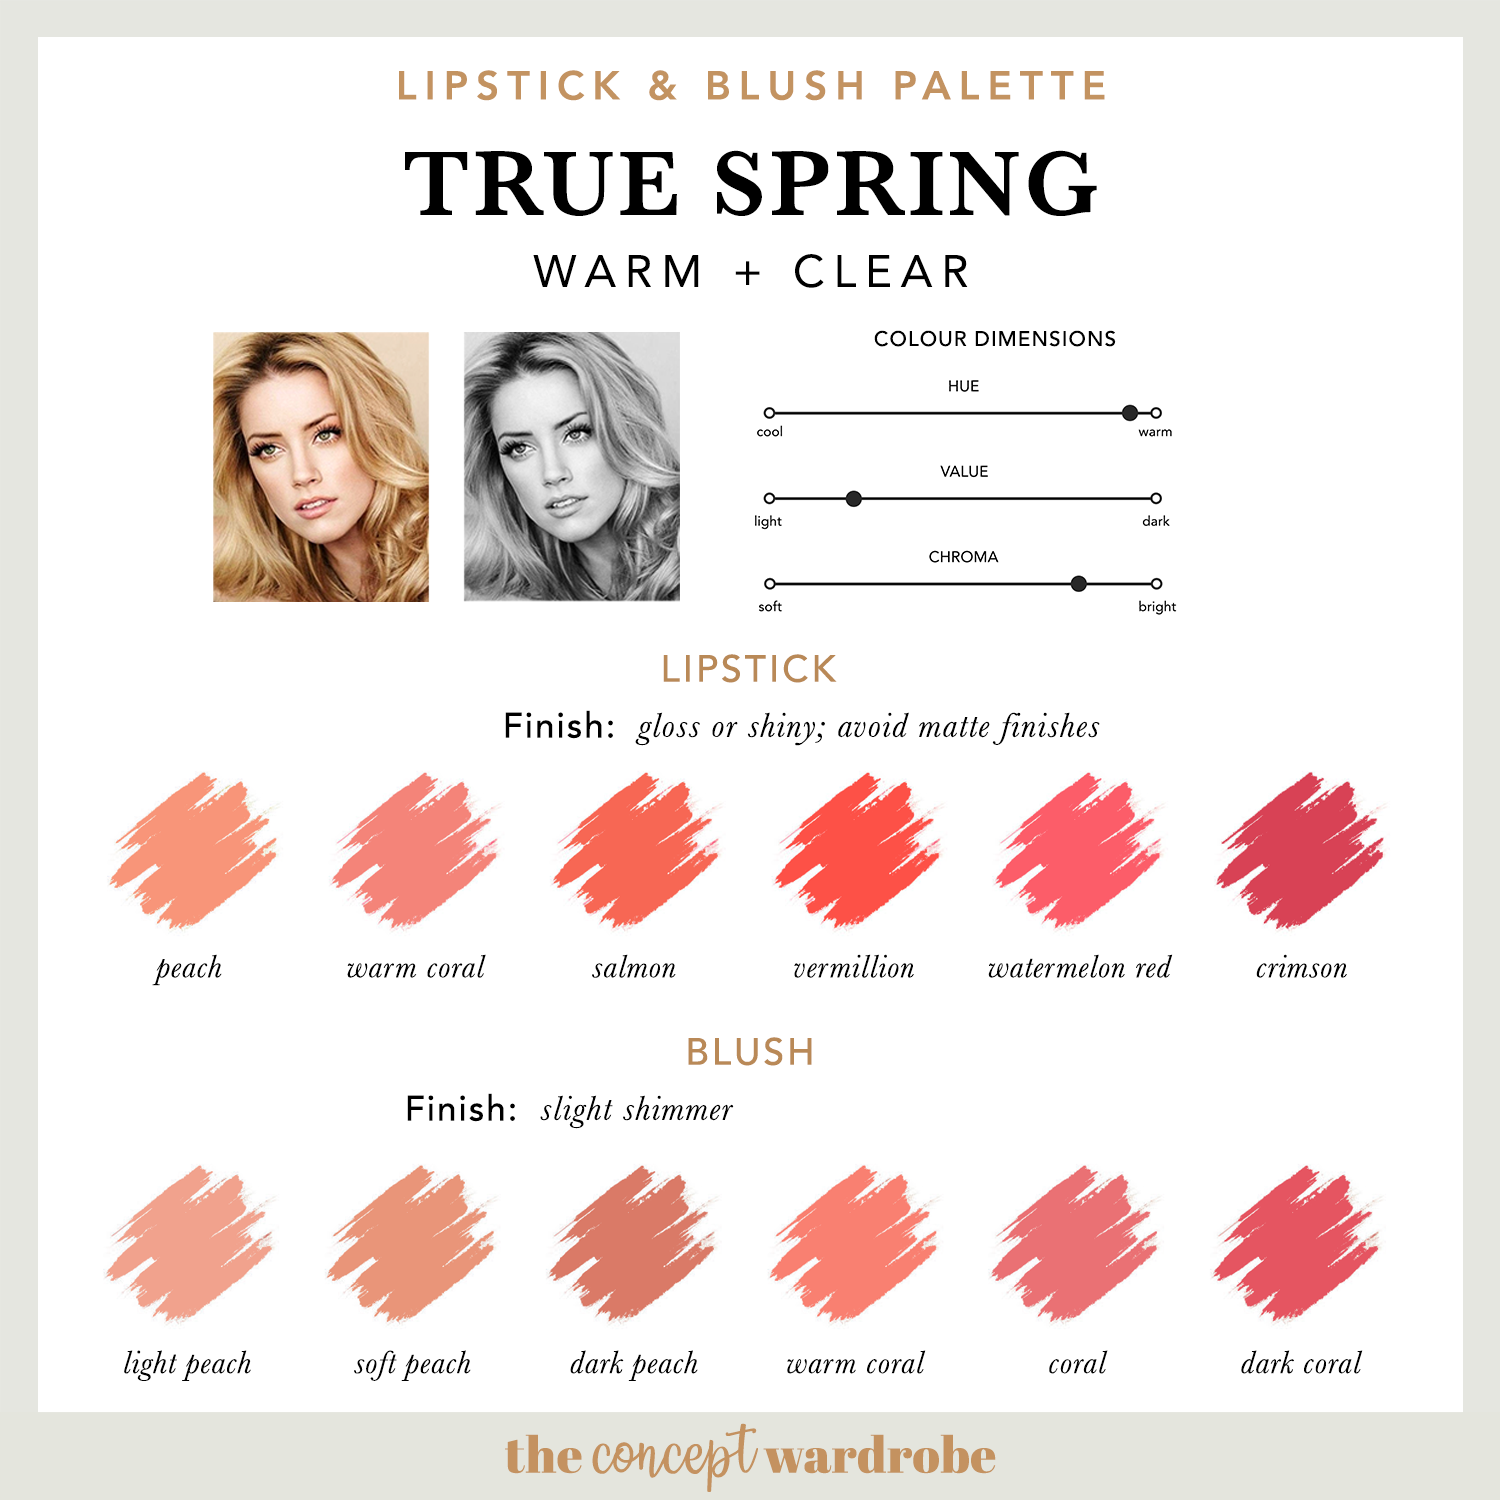 the concept wardrobe Lipstick & Blush Palette for True